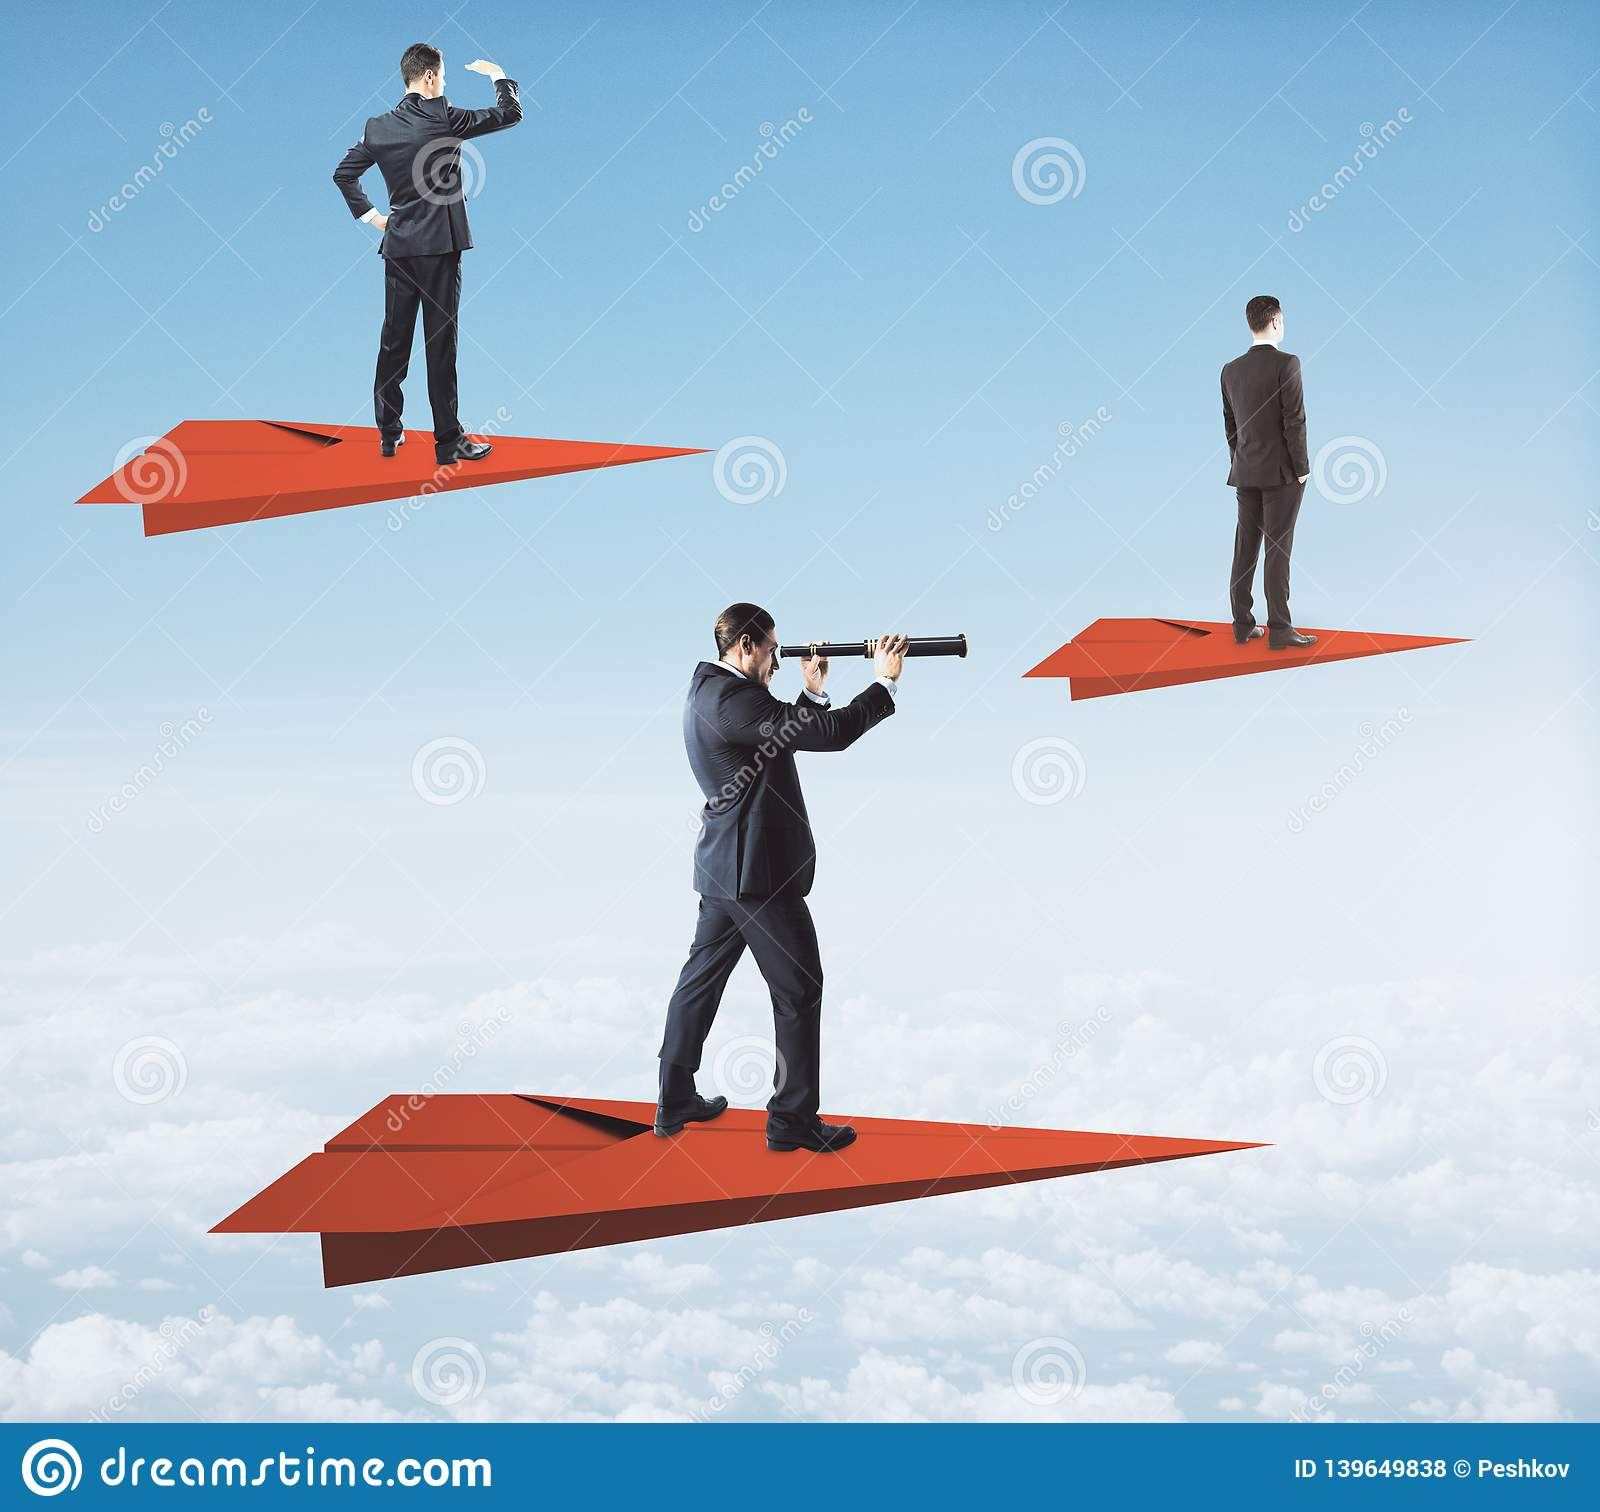 020 Background Research Paper Airplanes Vision Concept Businessmen Red Planes Looking Distance Telescopes Sky Awesome Full